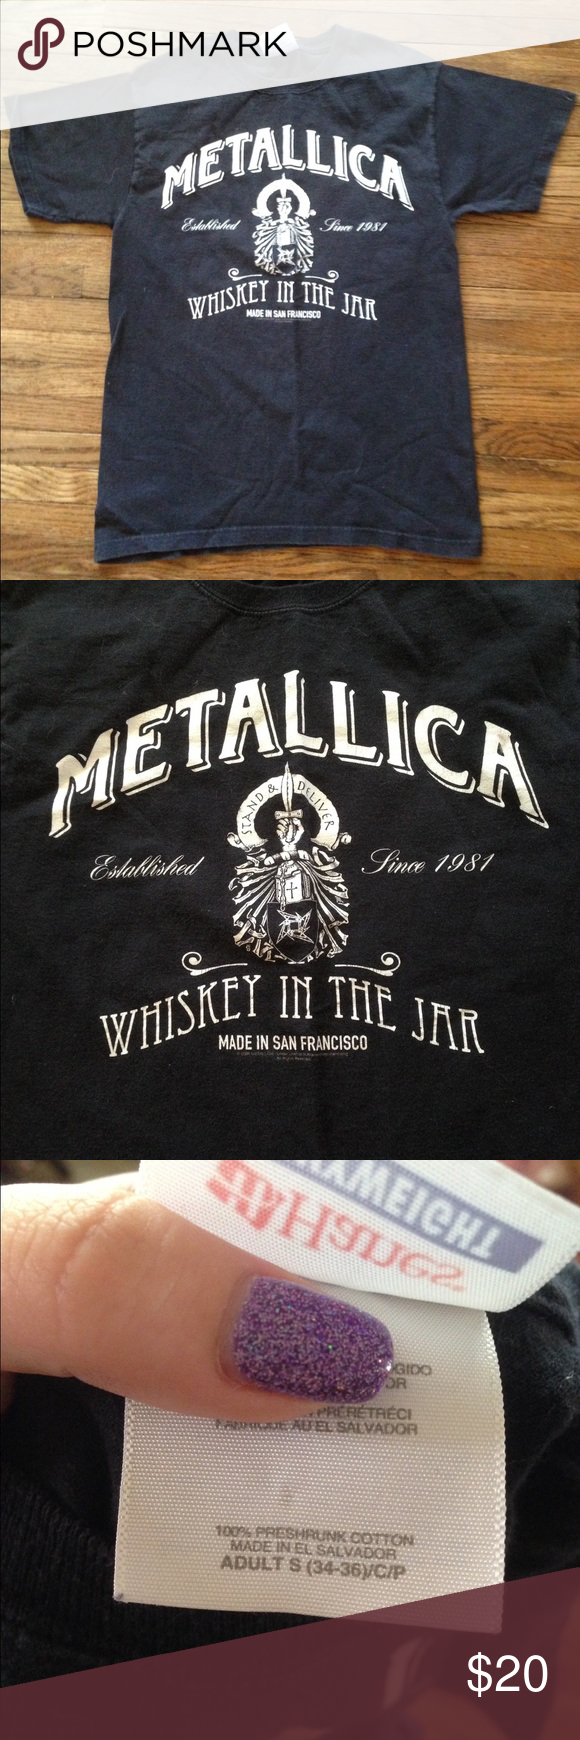 Metallica whiskey in the jar tshirt! This is a great shirt for any Metallica fan!! It has no holes, but there is a white spot on the inside of the shirt. No other spots or stains in the outside. It's only been worn once or twice because it was to small. It has also been washed. It comes from a smoke free environment. I ship Monday-Friday. I don't hold or trade. Please don't negotiate the price in the comments. I only sell through poshmark. Hot Topic Tops Tees - Short Sleeve